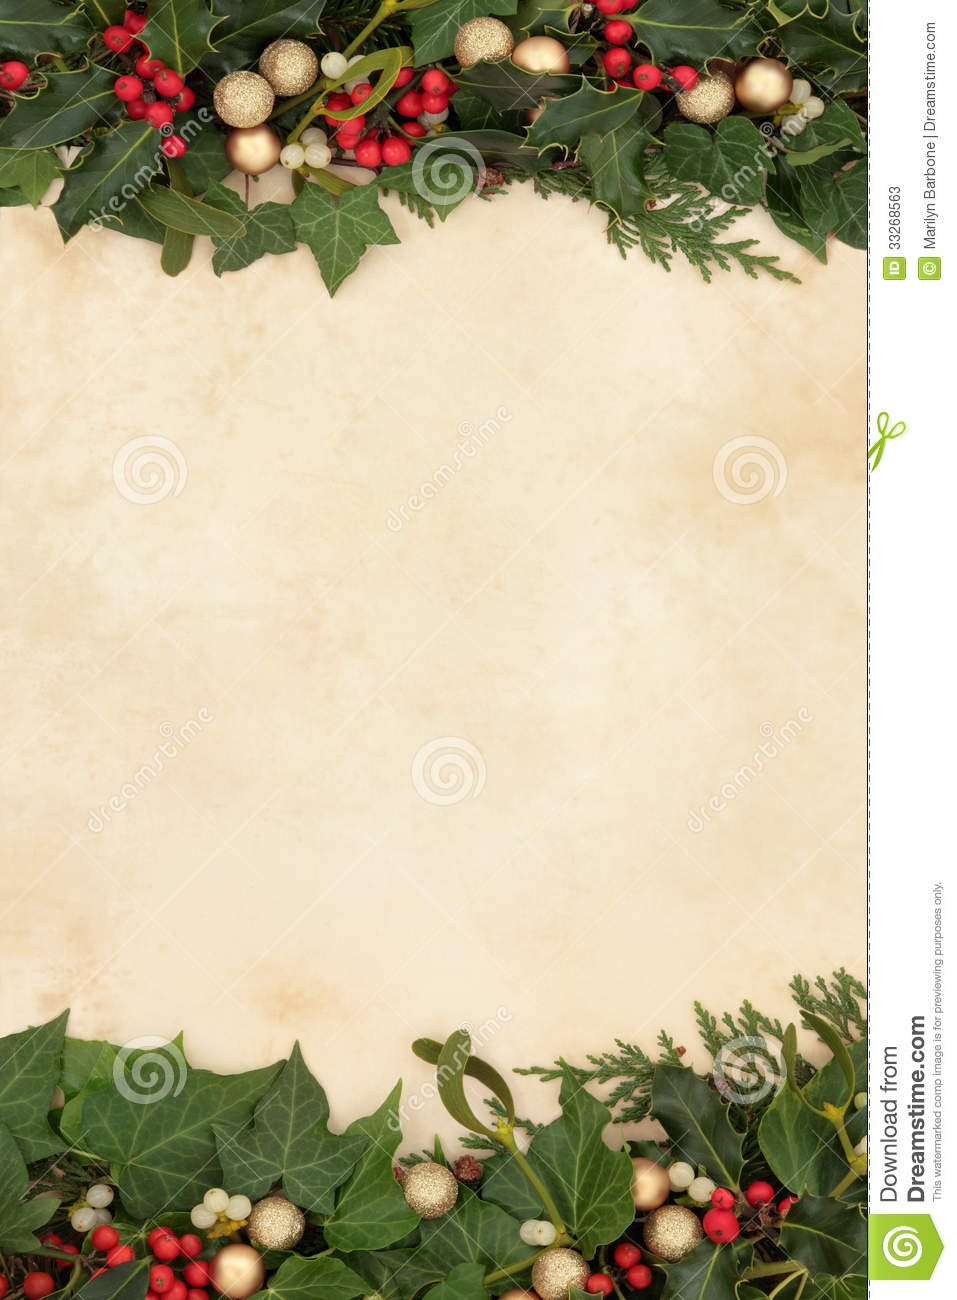 Decorative Christmas Border Stock Photos - Image: 33268563